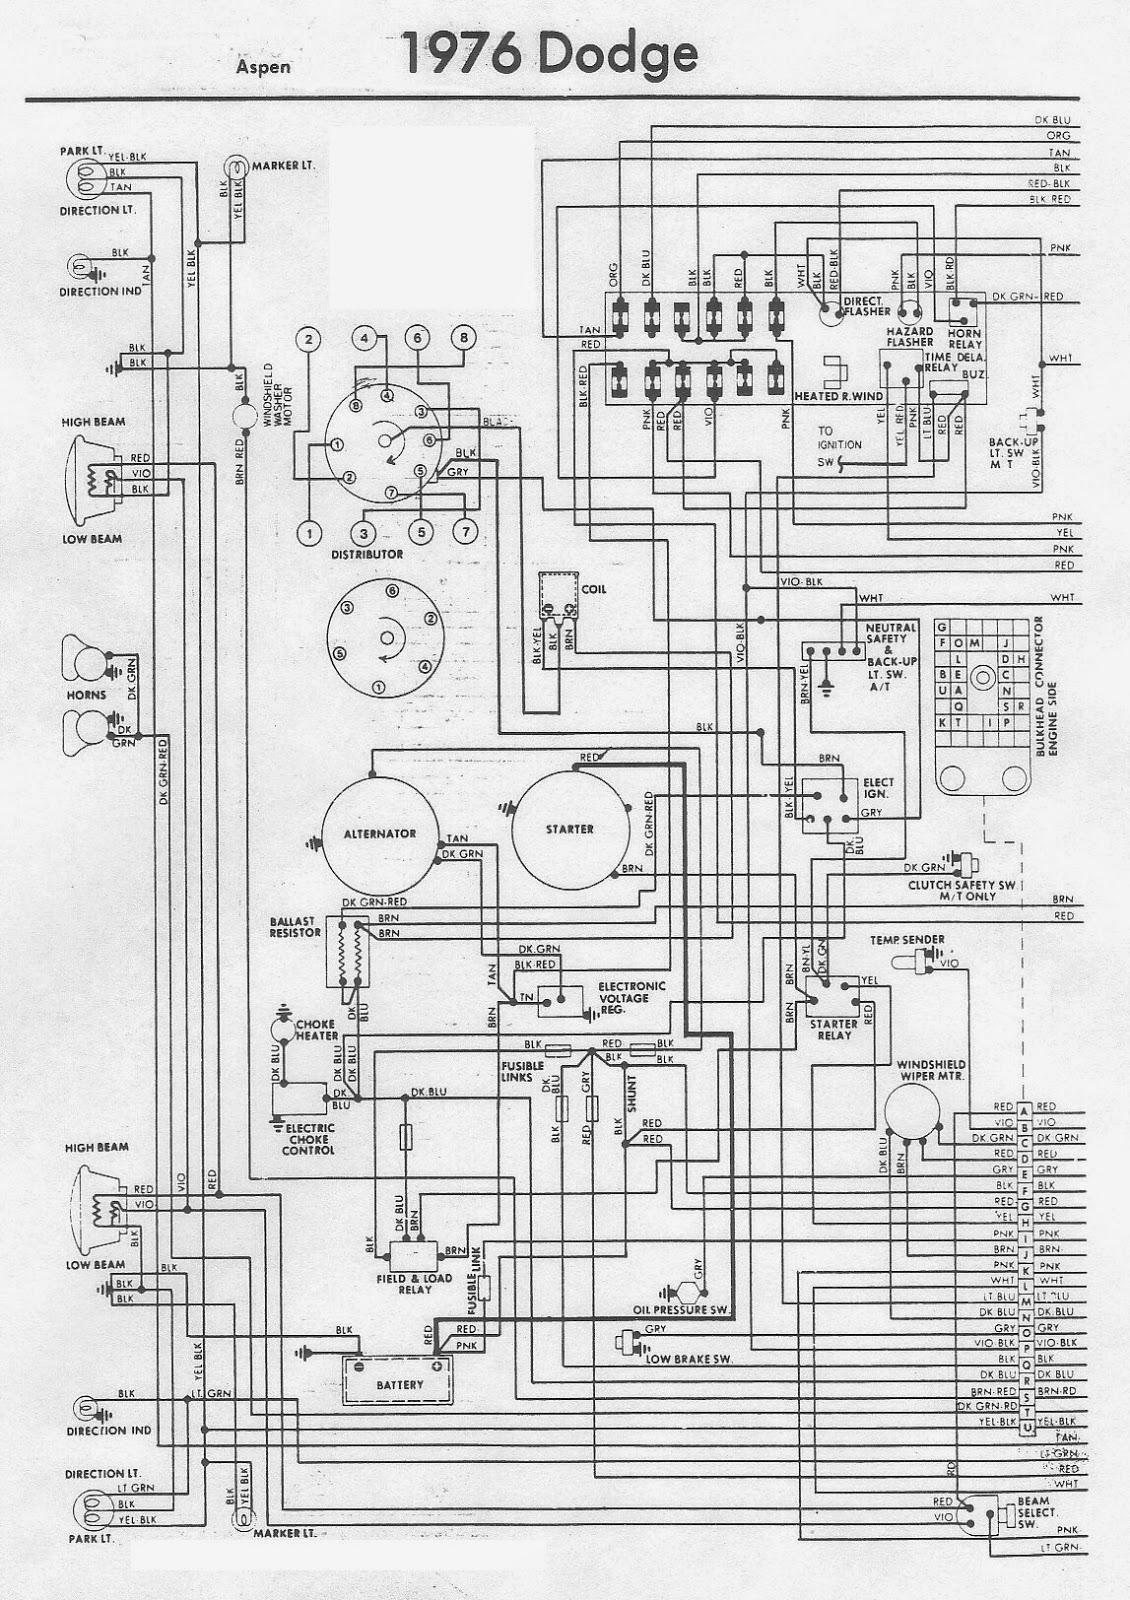 The 1976 Dodge Aspen Wiring Diagram Electrical System Circuit And